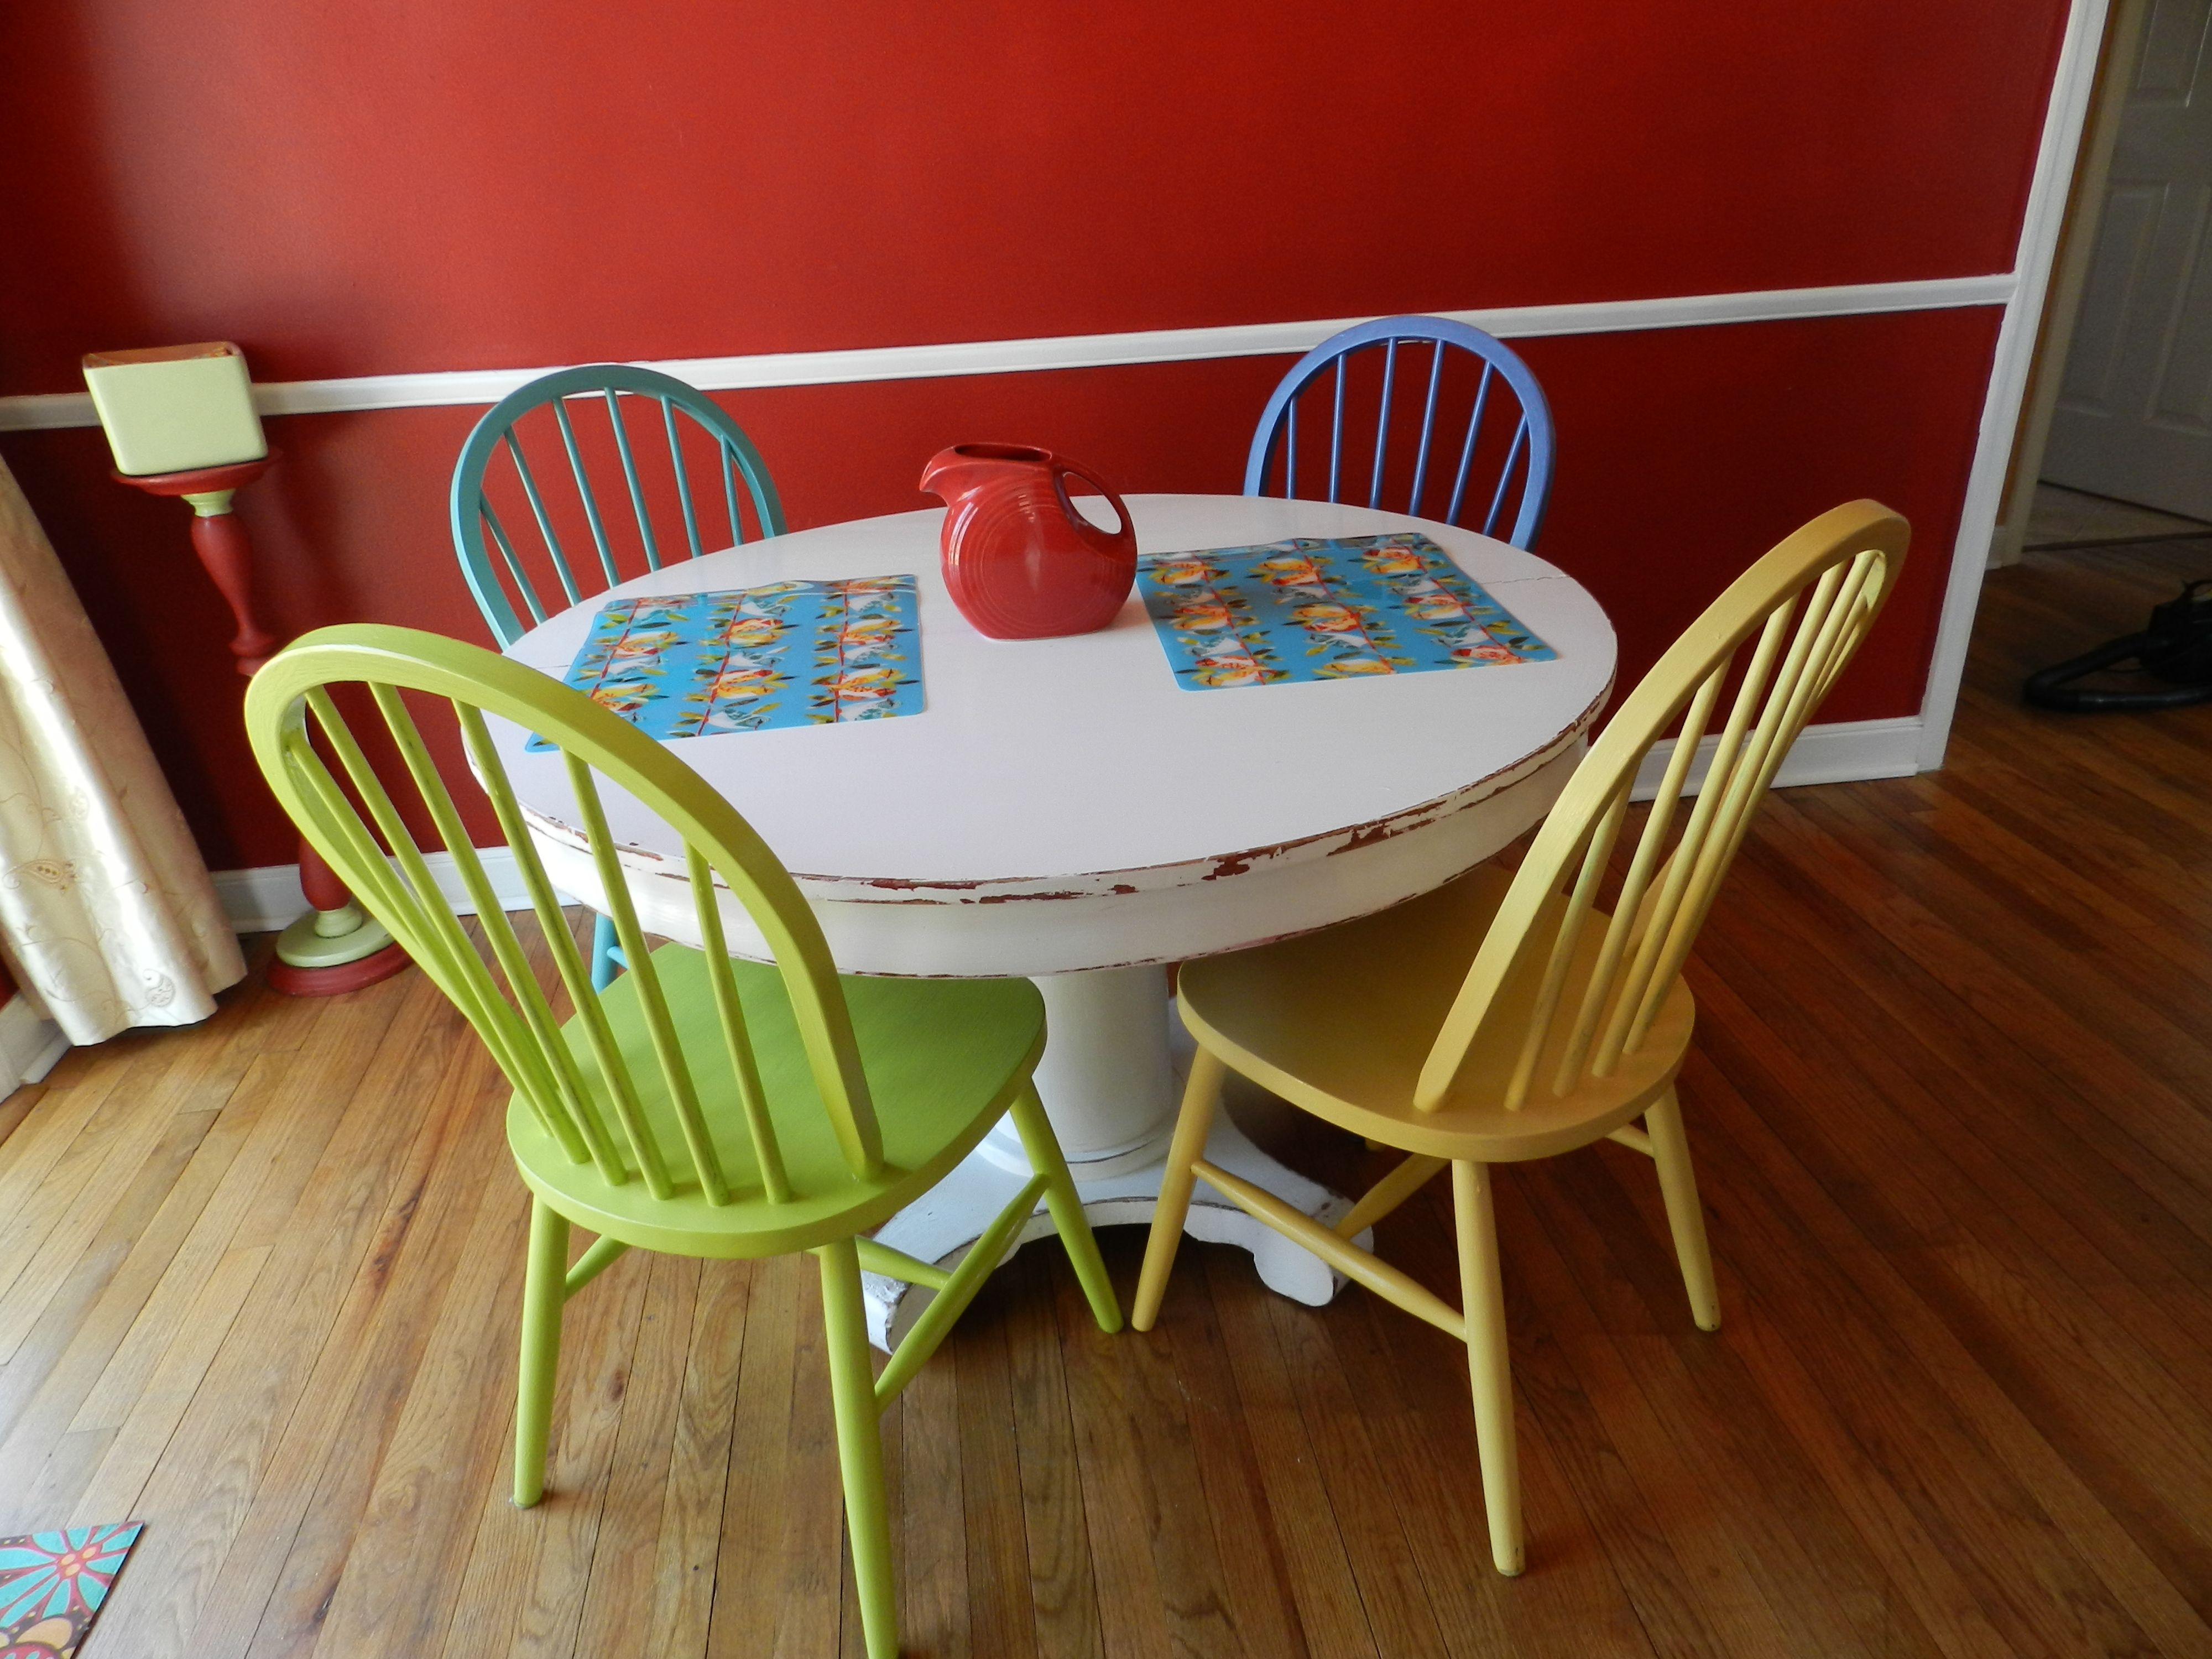 Colorful Painted Chairs Multicolored Chairs Kitchen Table Cottage Farm Kitchen Teal Yellow Yellow Gr Dining Room Colors Teal Chair Bedroom Paint Colors